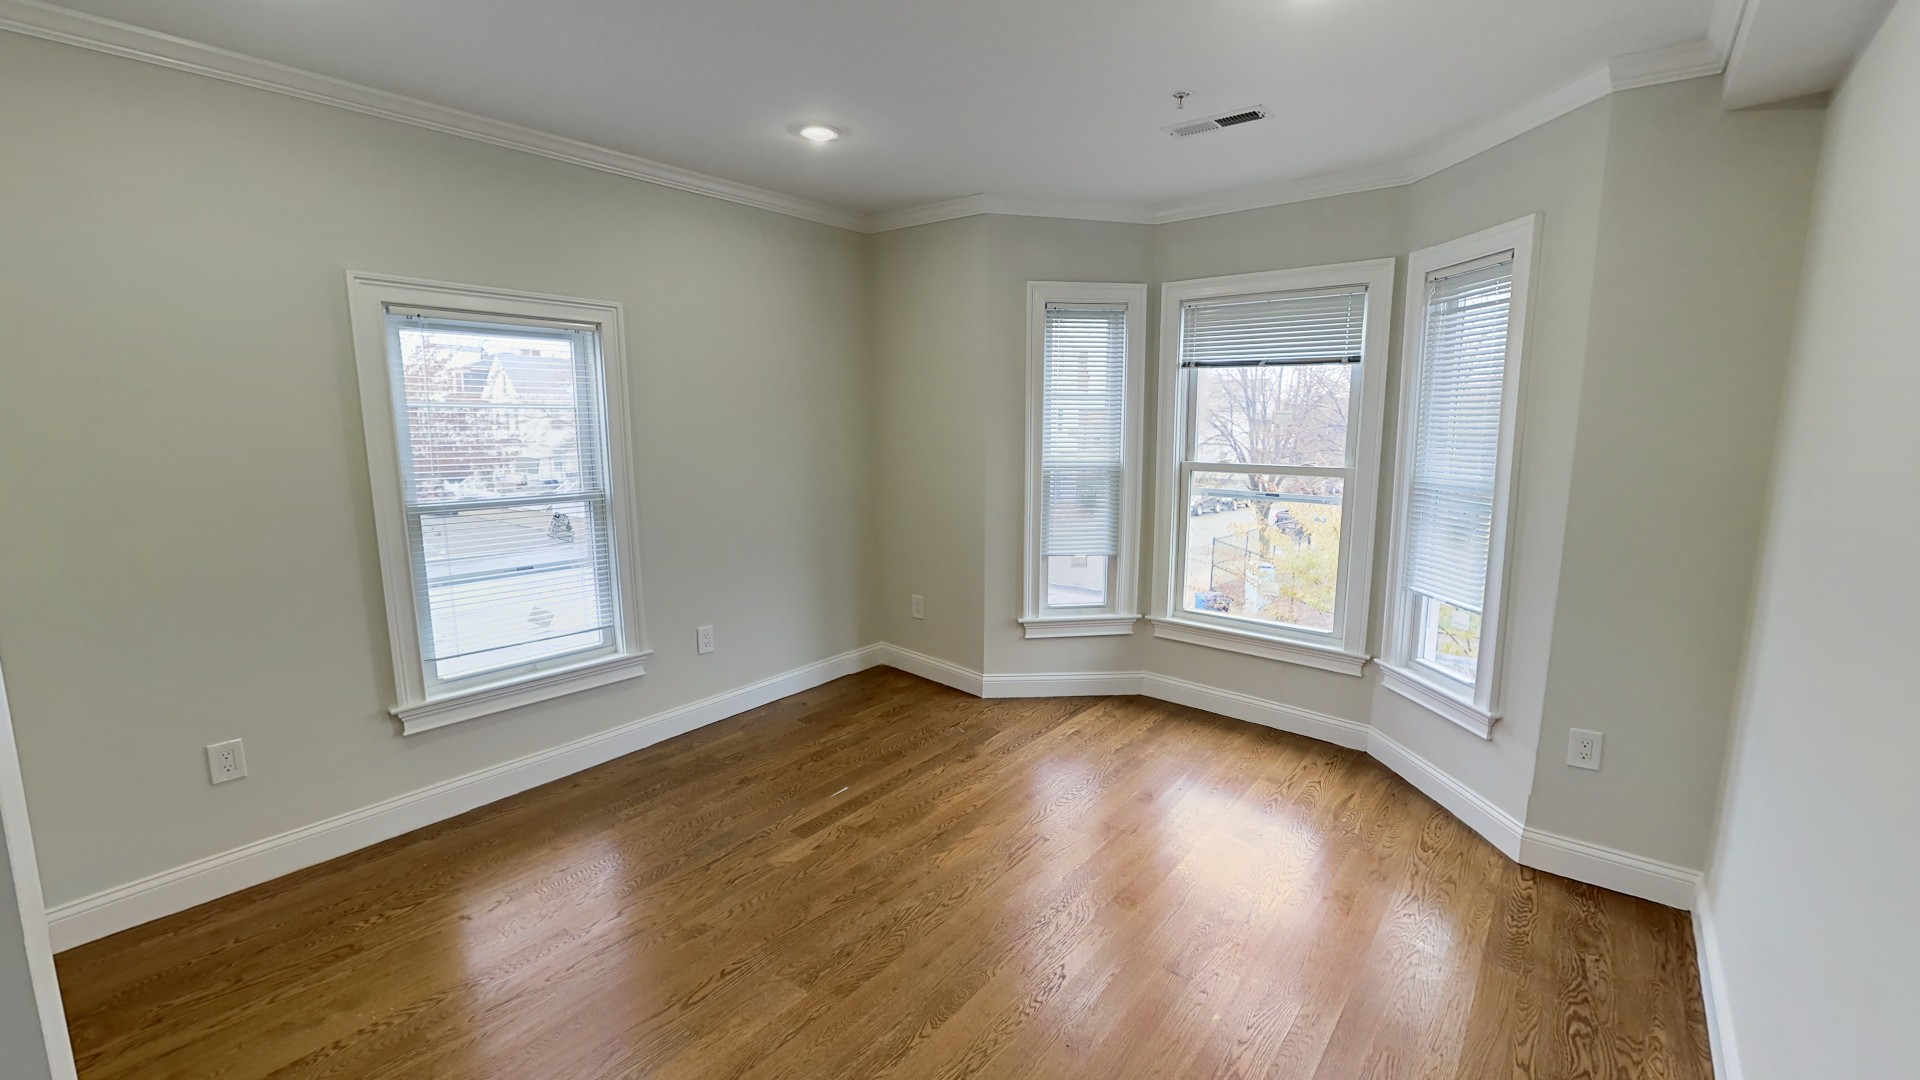 Photos of apartment on Pearl St.,Somerville MA 02145